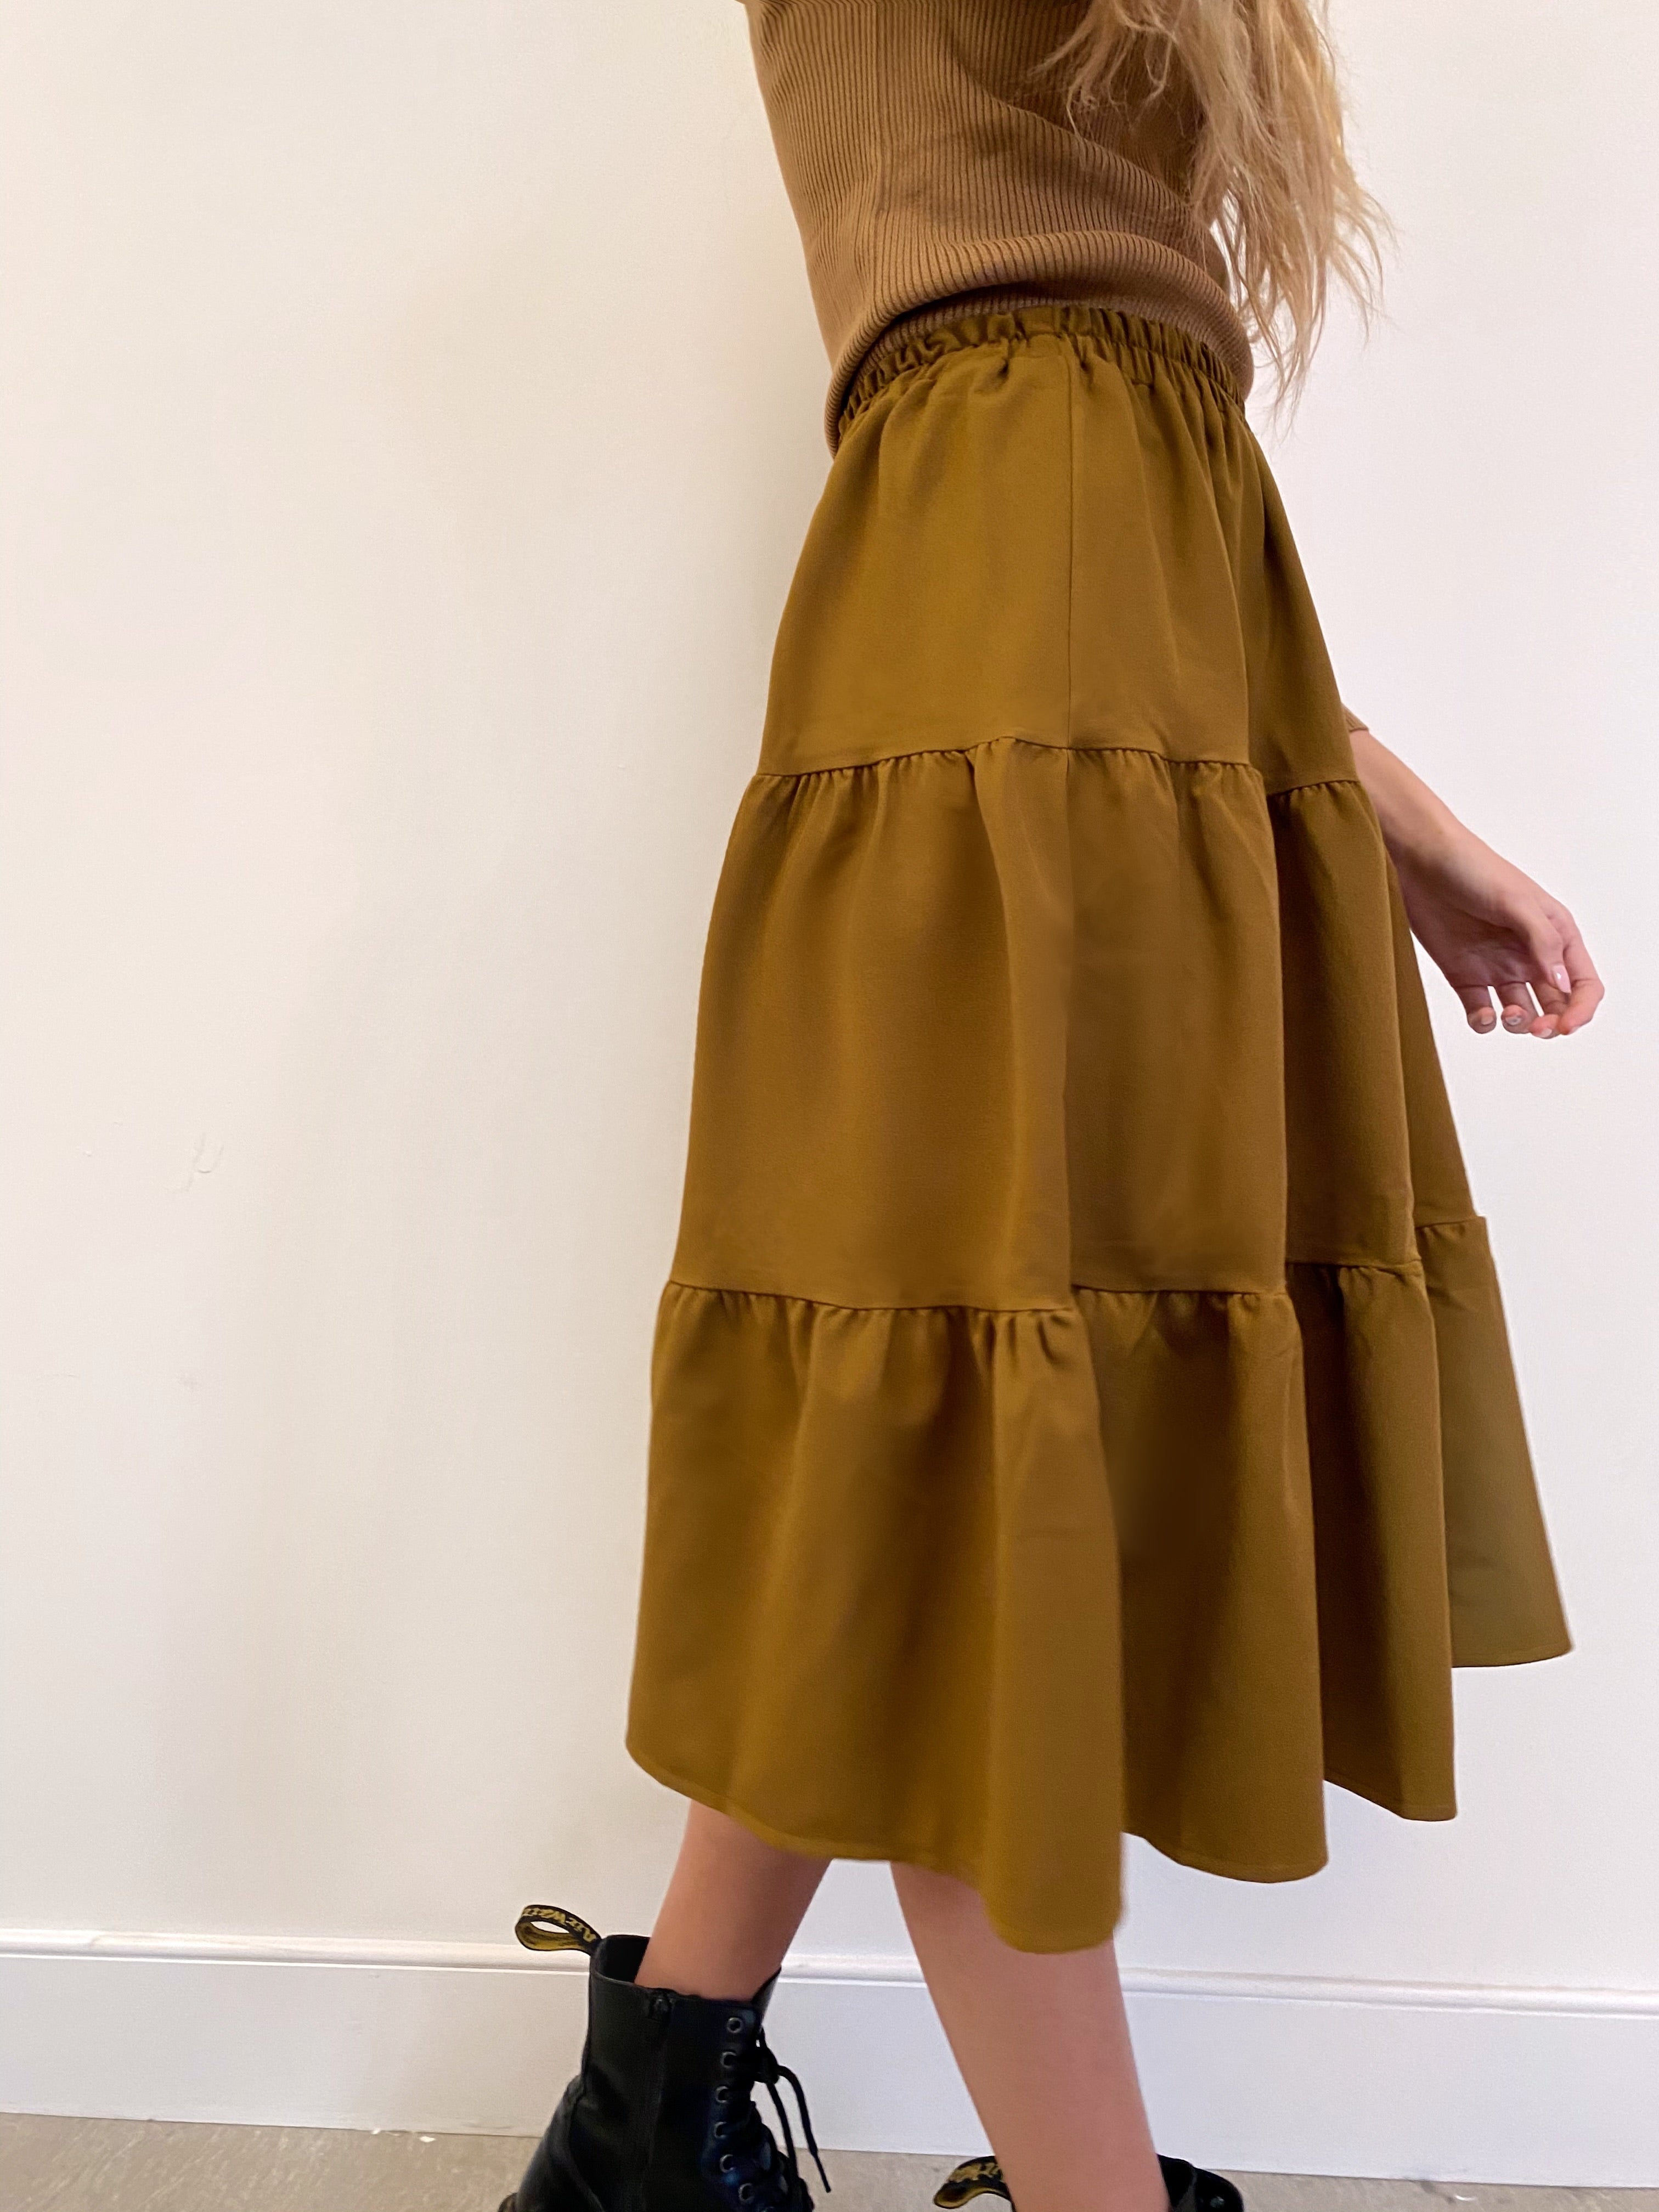 The Olive Flirt Skirt *Tall*